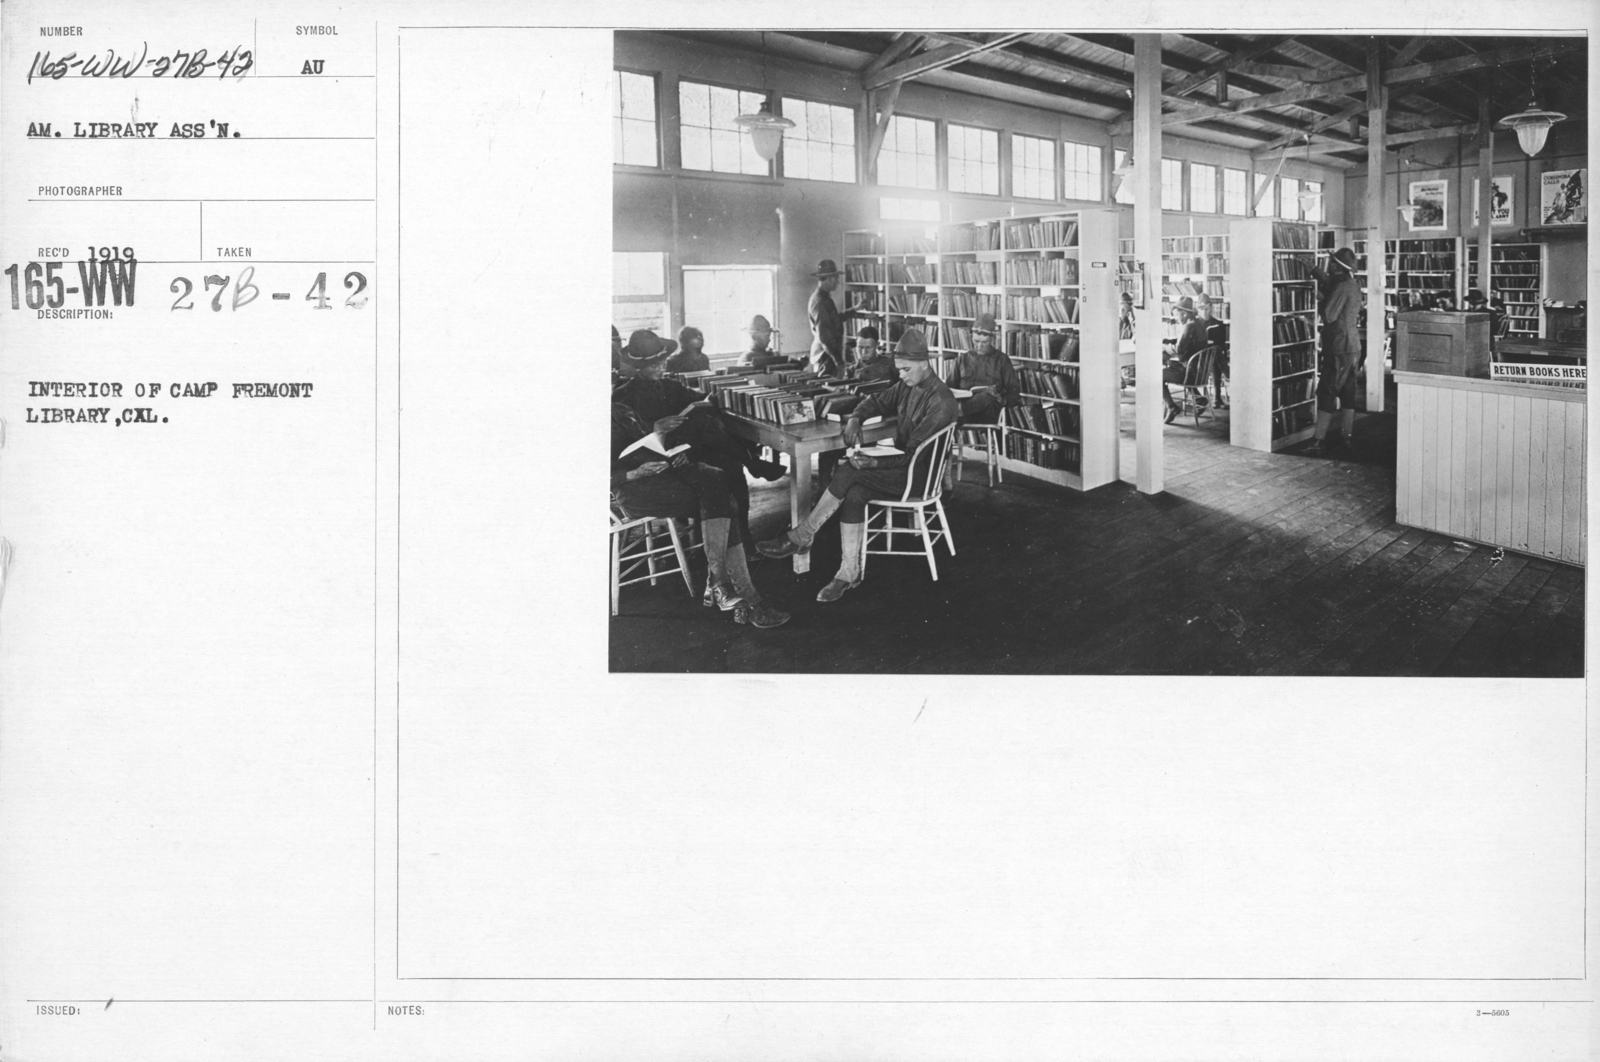 American Library Association - Libraries - Alabama through Iowa - Interior of Camp Fremont Library, Cal